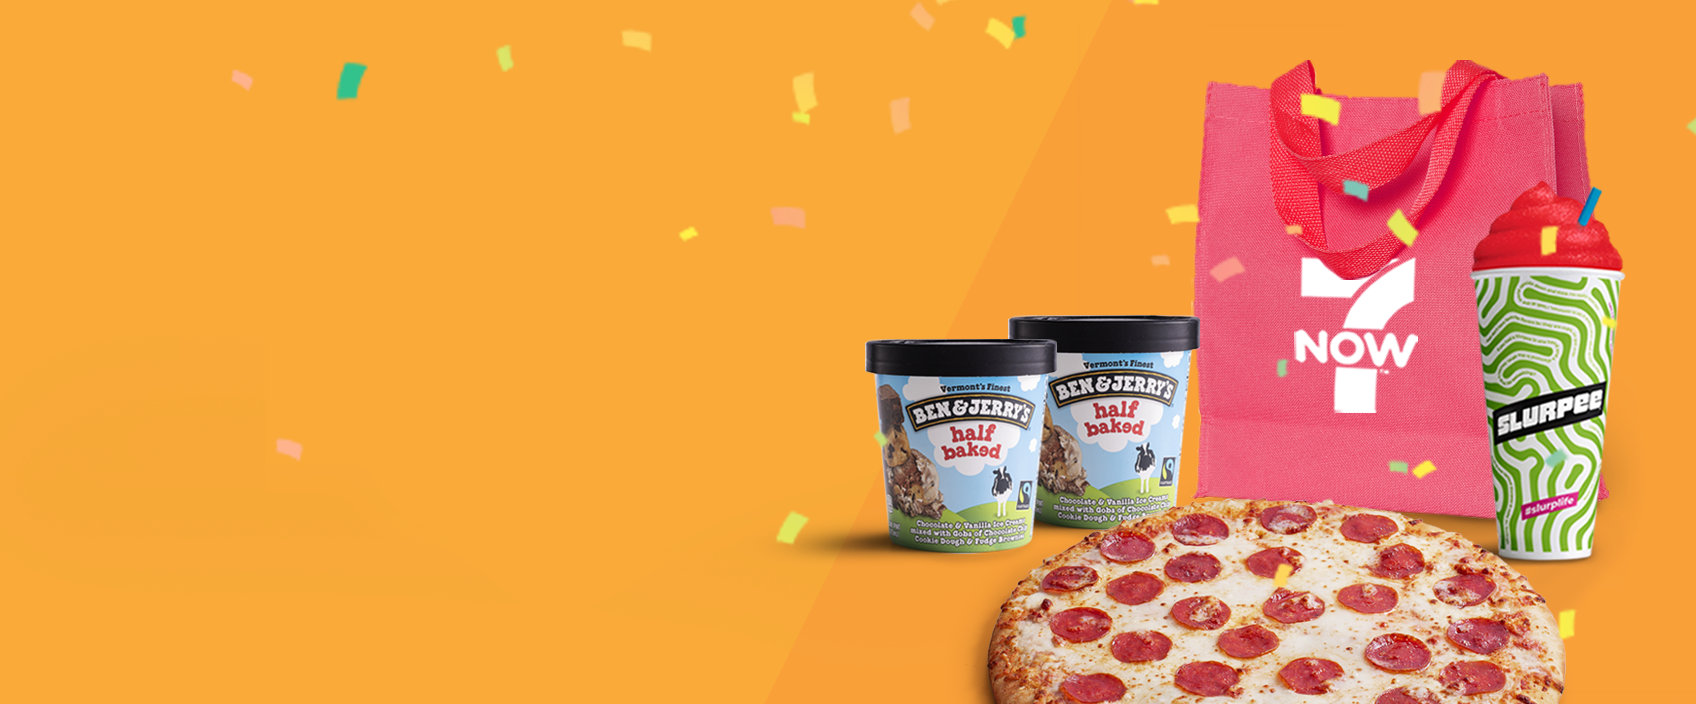 7NOW-delivery-background-pizza-slurpee-icecream.png